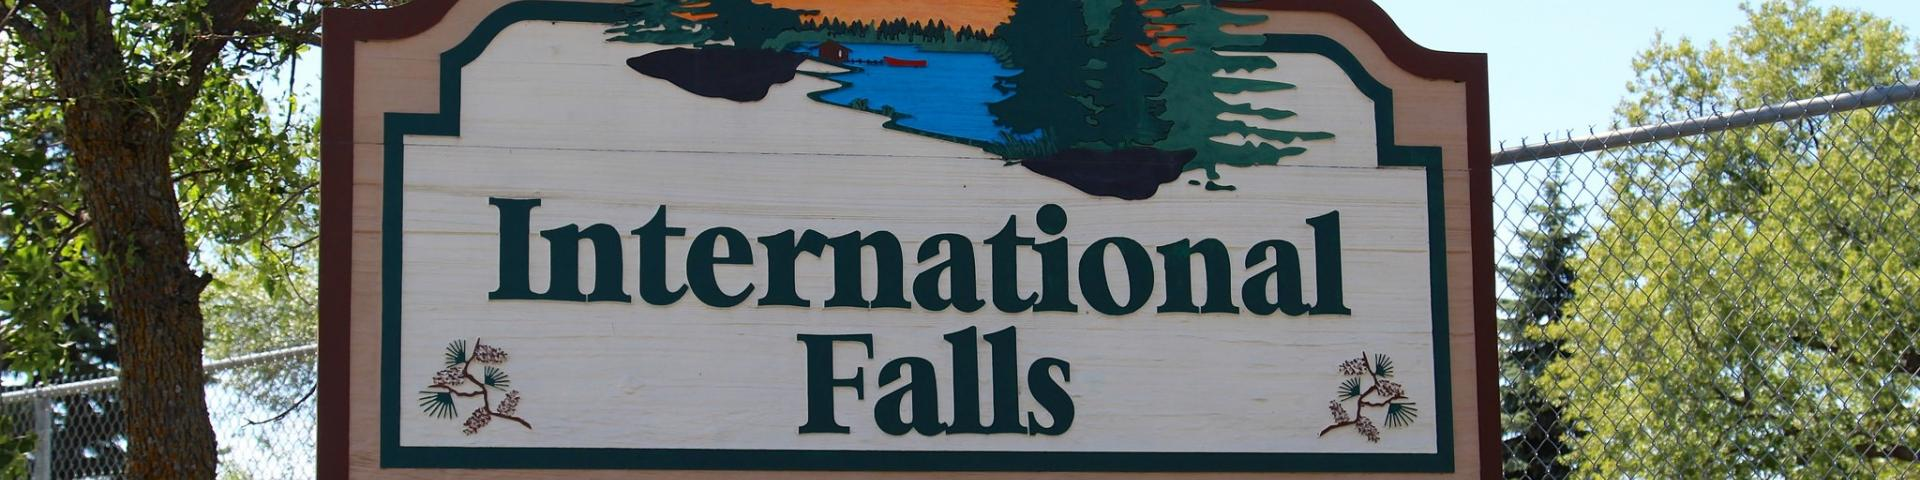 international falls sign